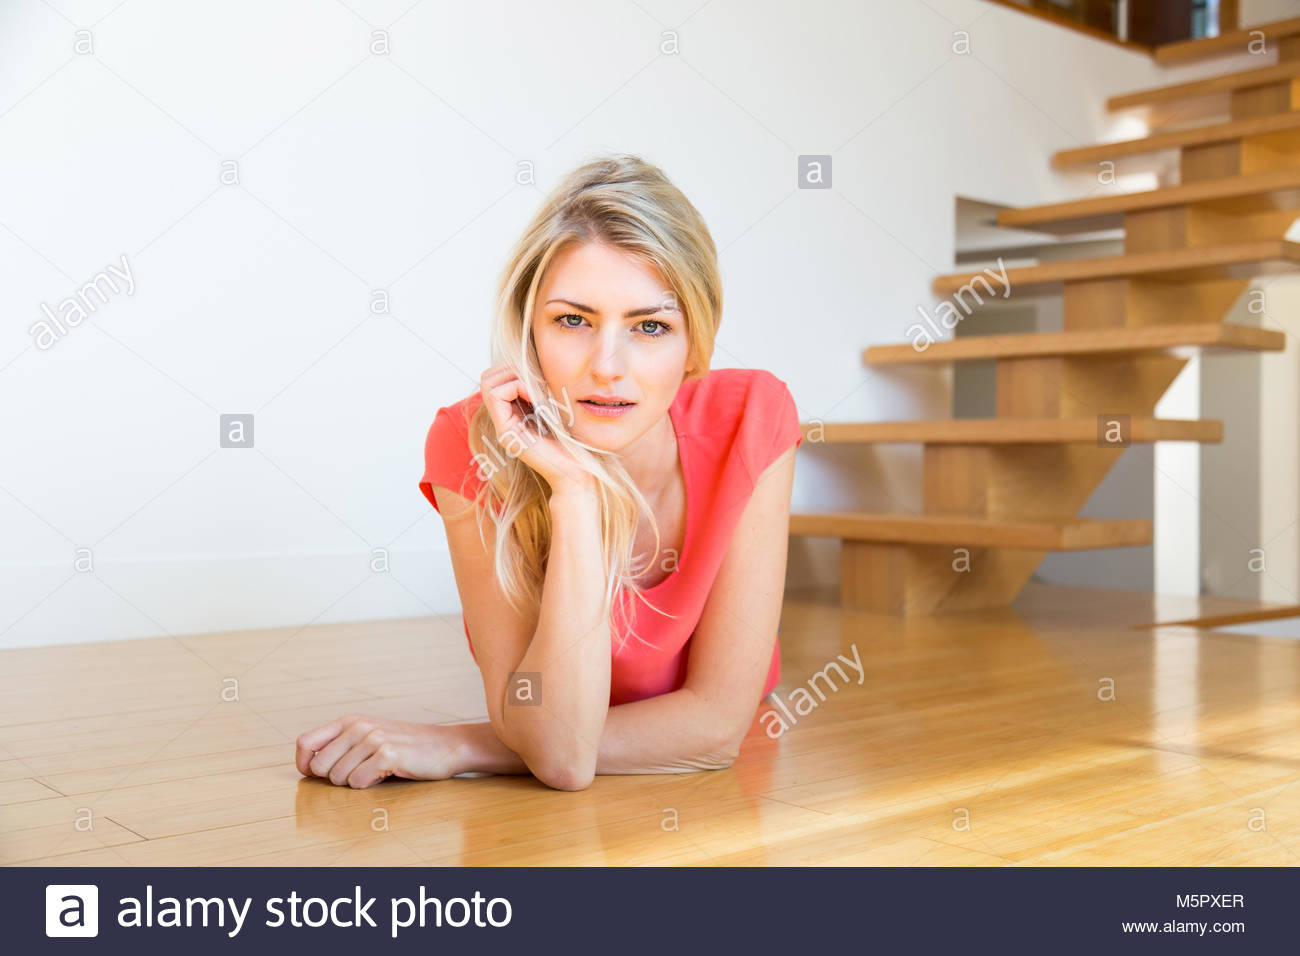 Confident Young Blond Woman Lying on Wooden Floor - Stock Image